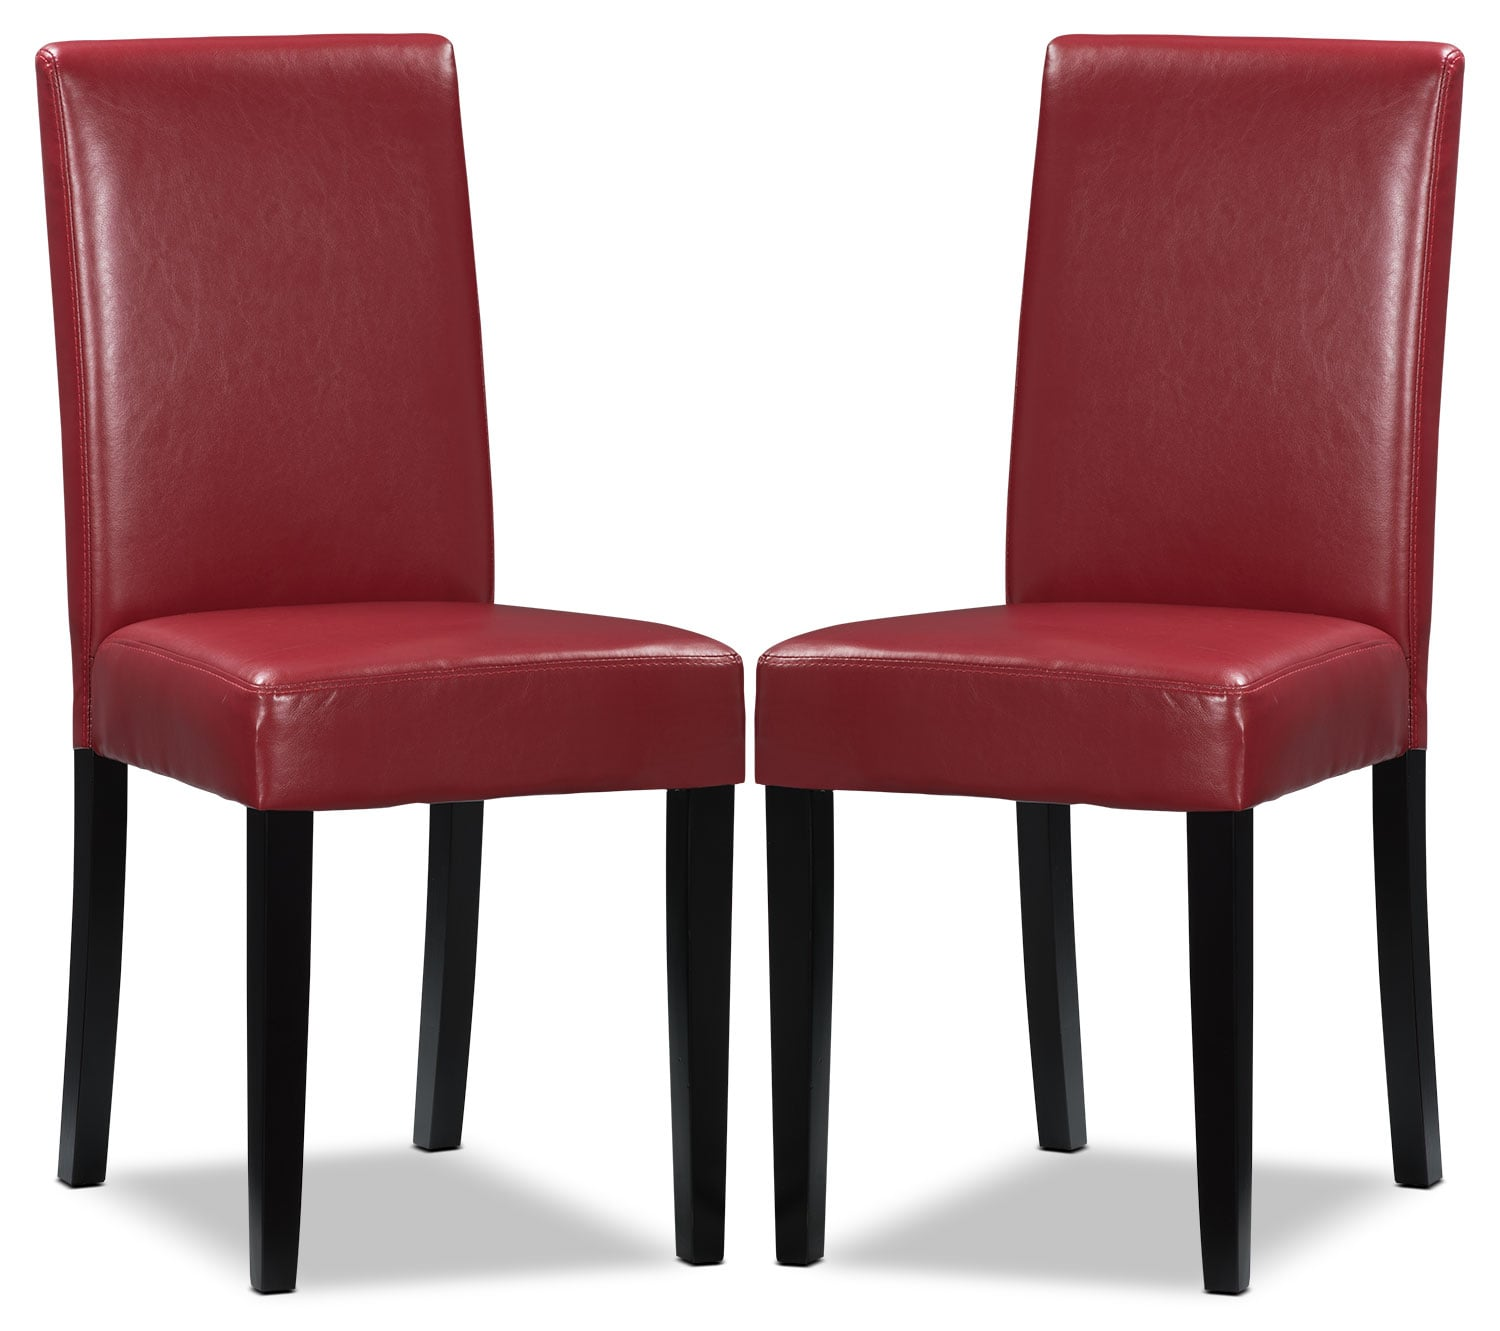 Red Faux Leather Accent Dining Chair – Set of 2